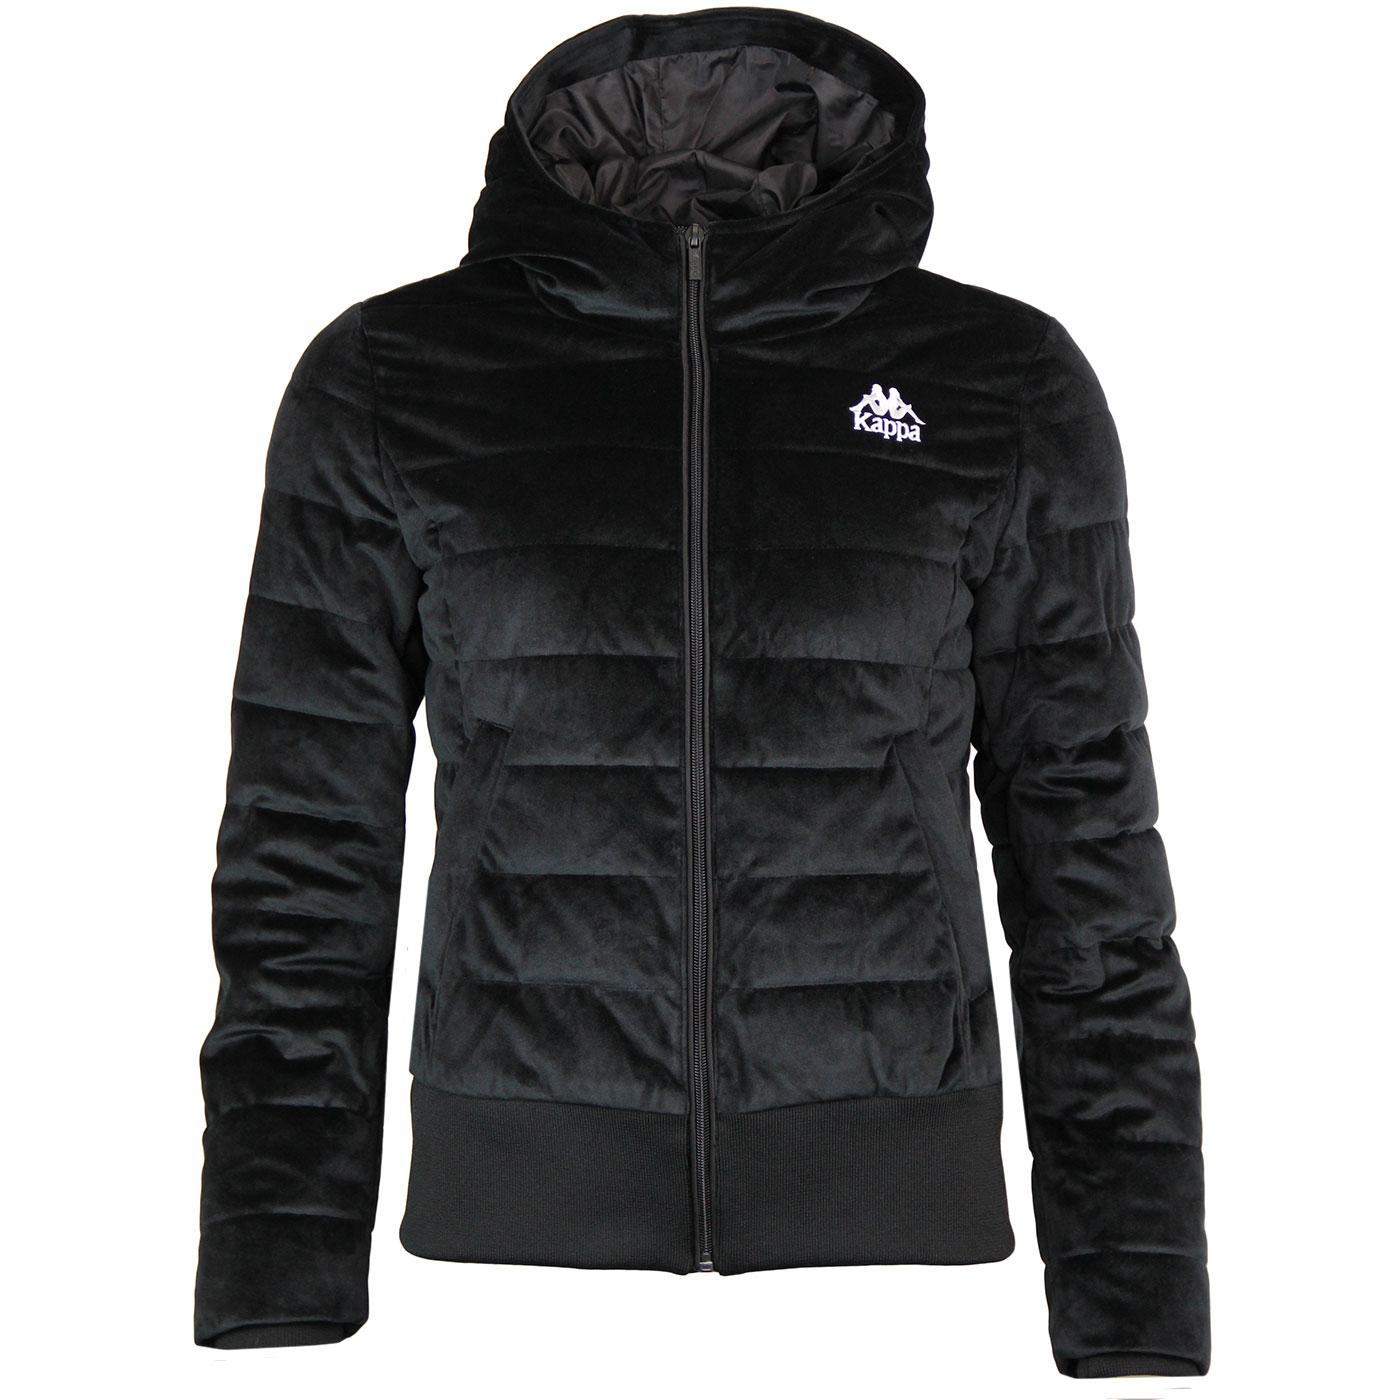 Ambac KAPPA Authentic Velvet Padded Jacket (Black)